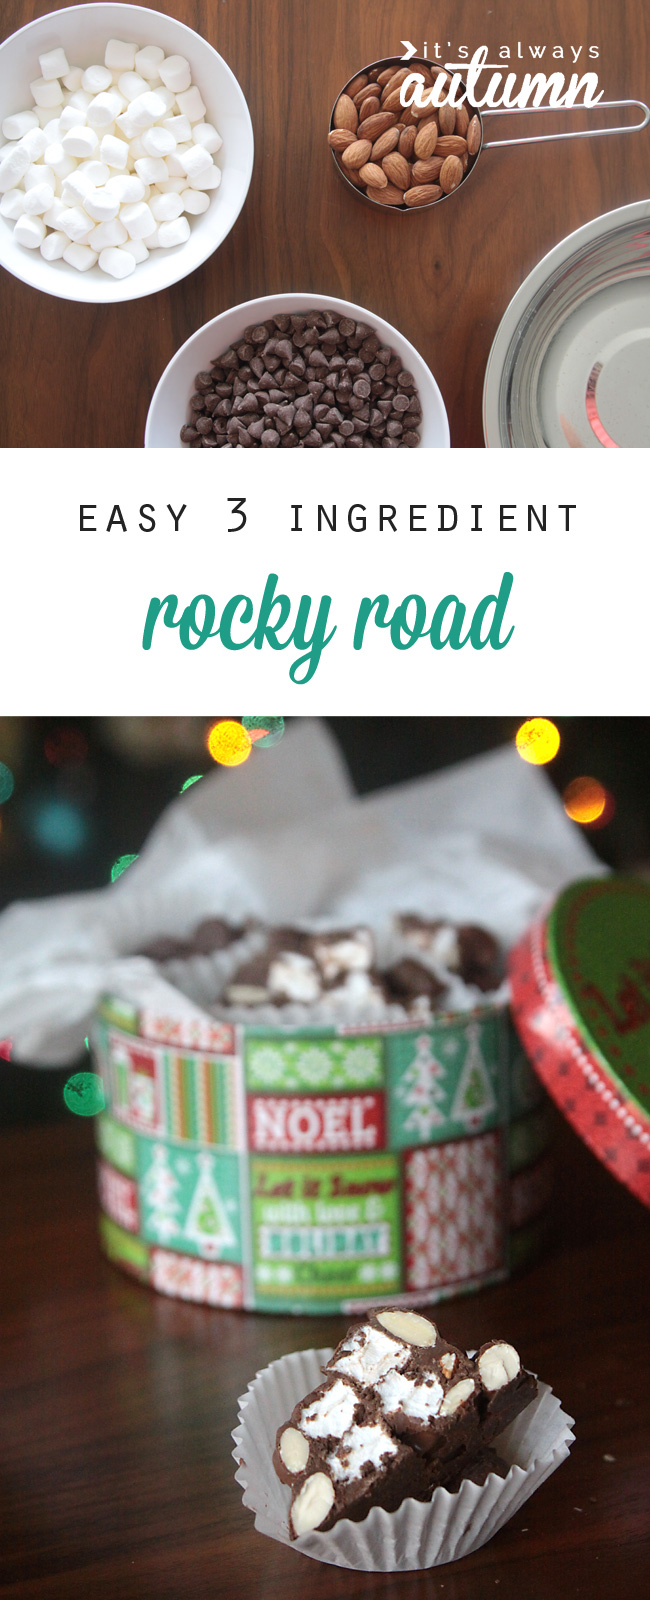 How to make homemade rocky road - YUM! Such an easy, inexpensive gift idea that's perfect for anyone on your holiday or Christmas list! Chocolate, almonds, and marshmallow.